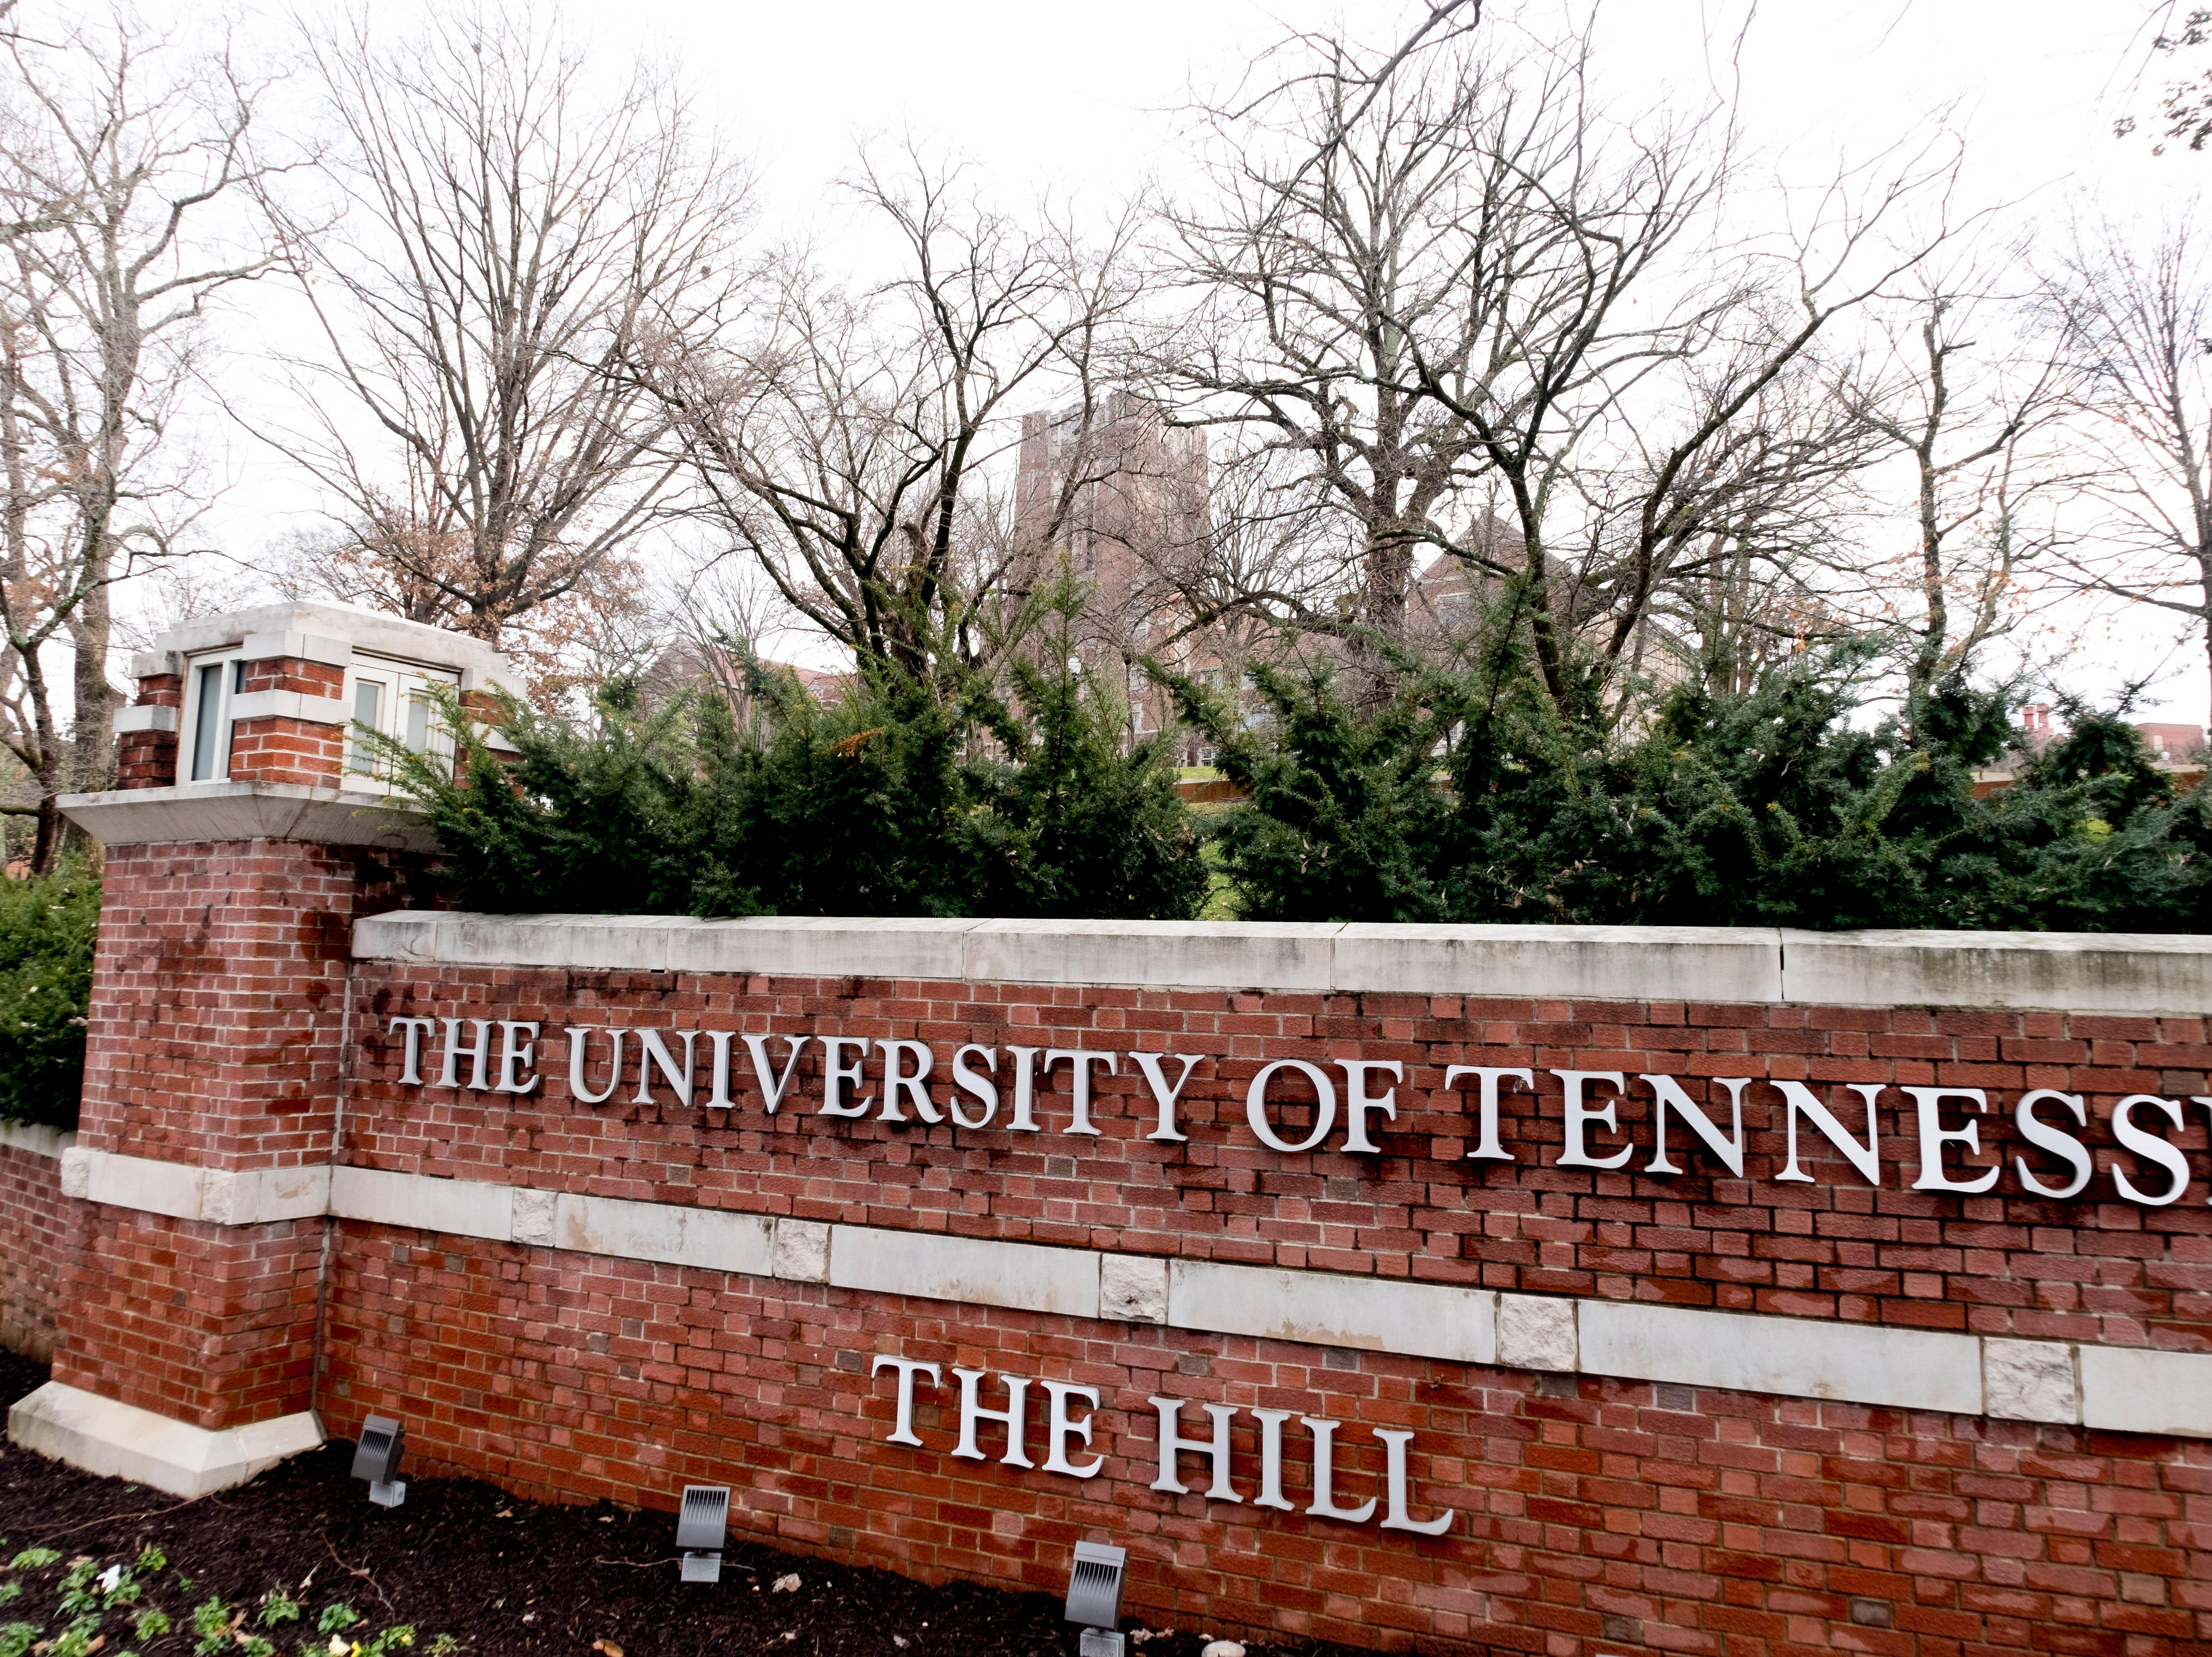 The Hill on the University of Tennessee campus in Knoxville, Tennessee on Tuesday, January 1, 2019.